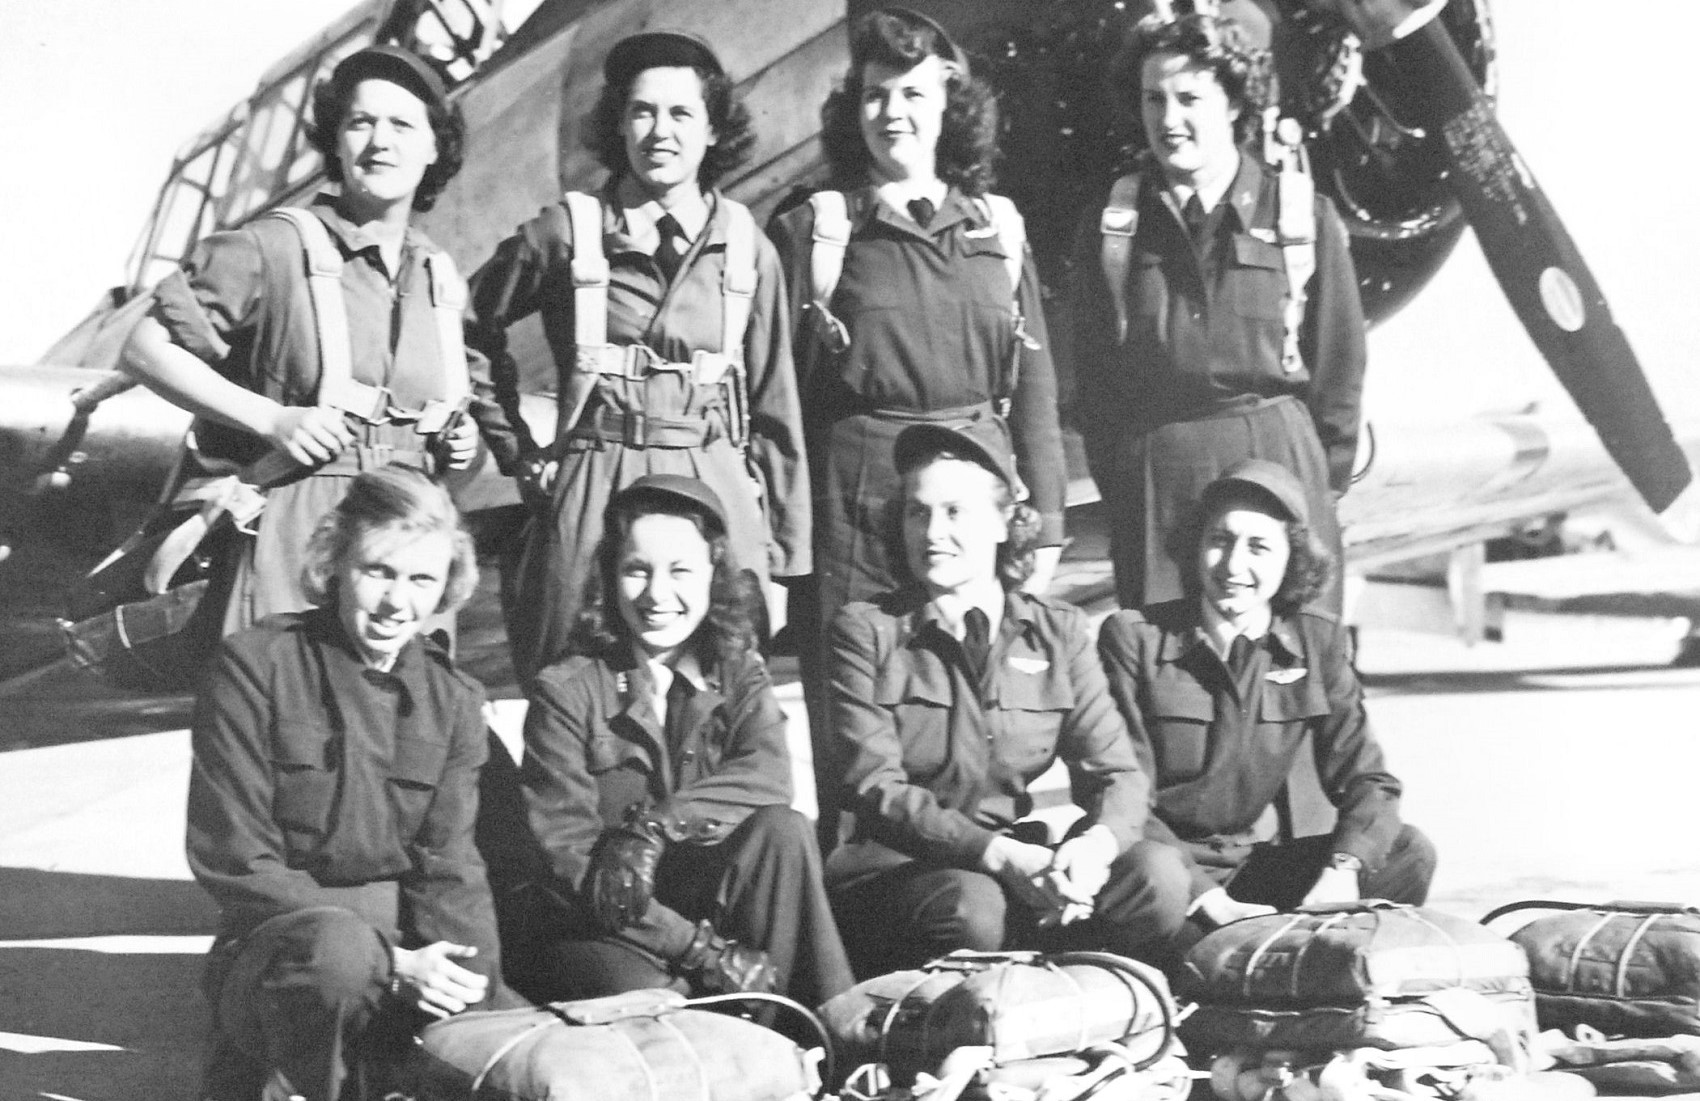 Female World War II Pilots article at spillwords.com